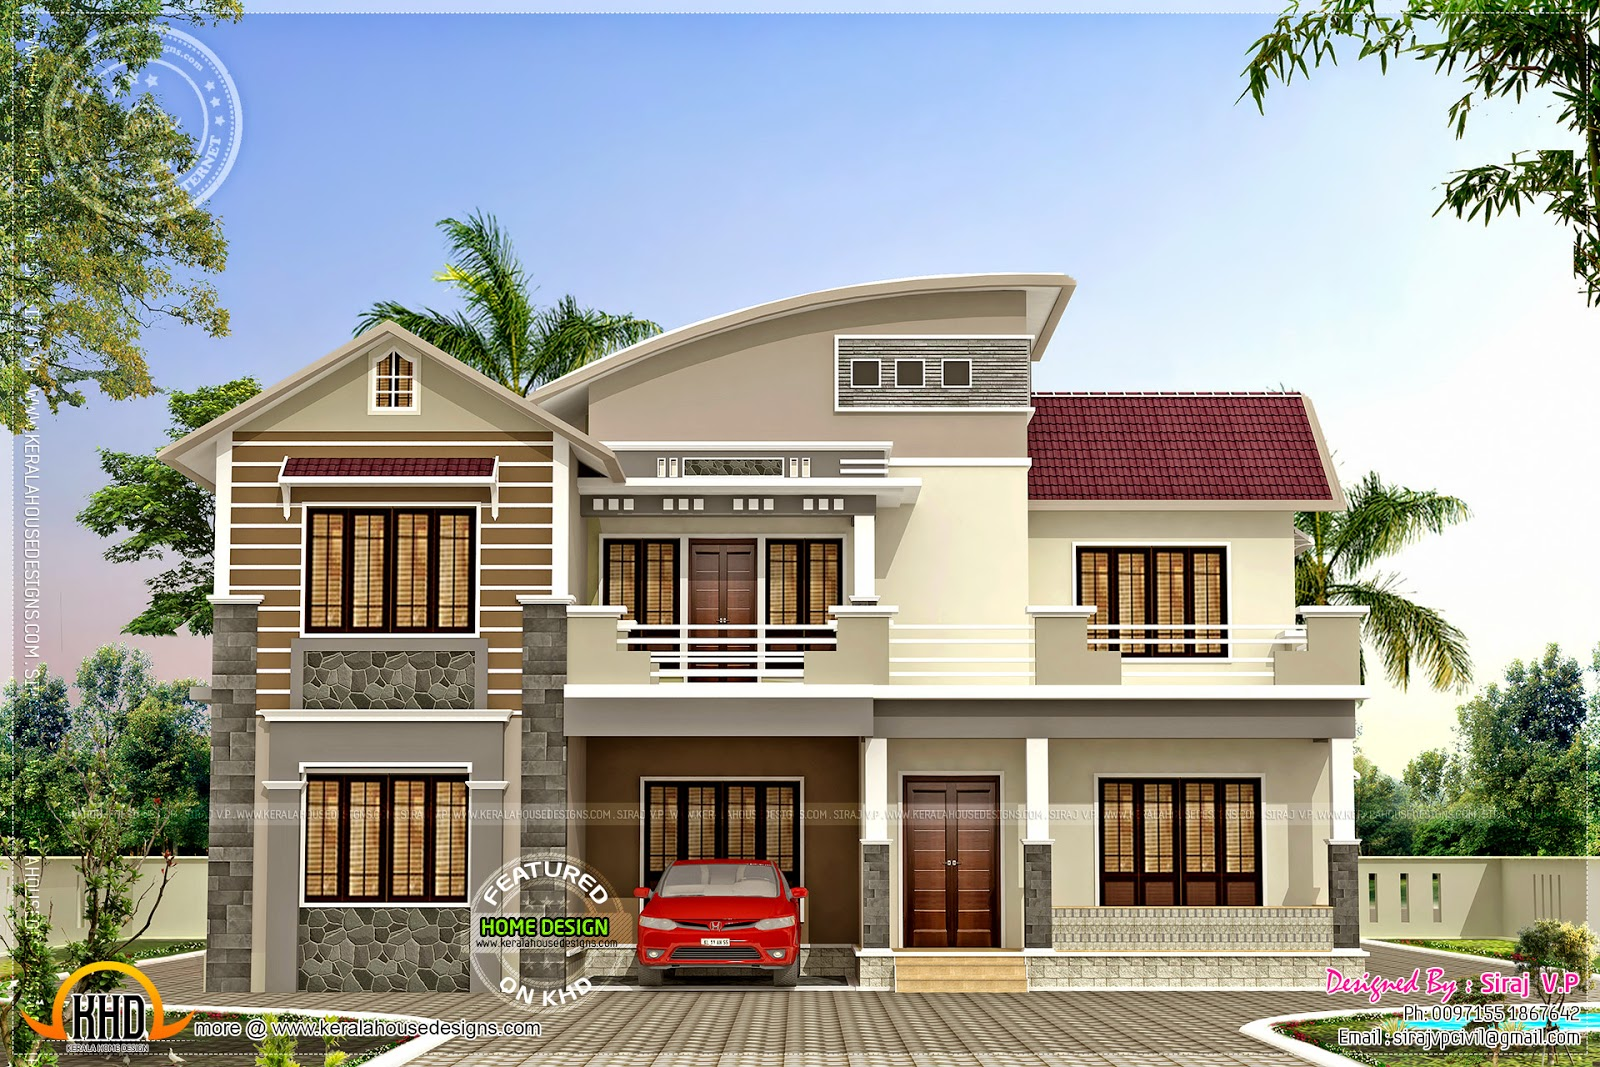 modern mix bhk house exterior kerala home design floor plans sq ft house provision stair future expansion home